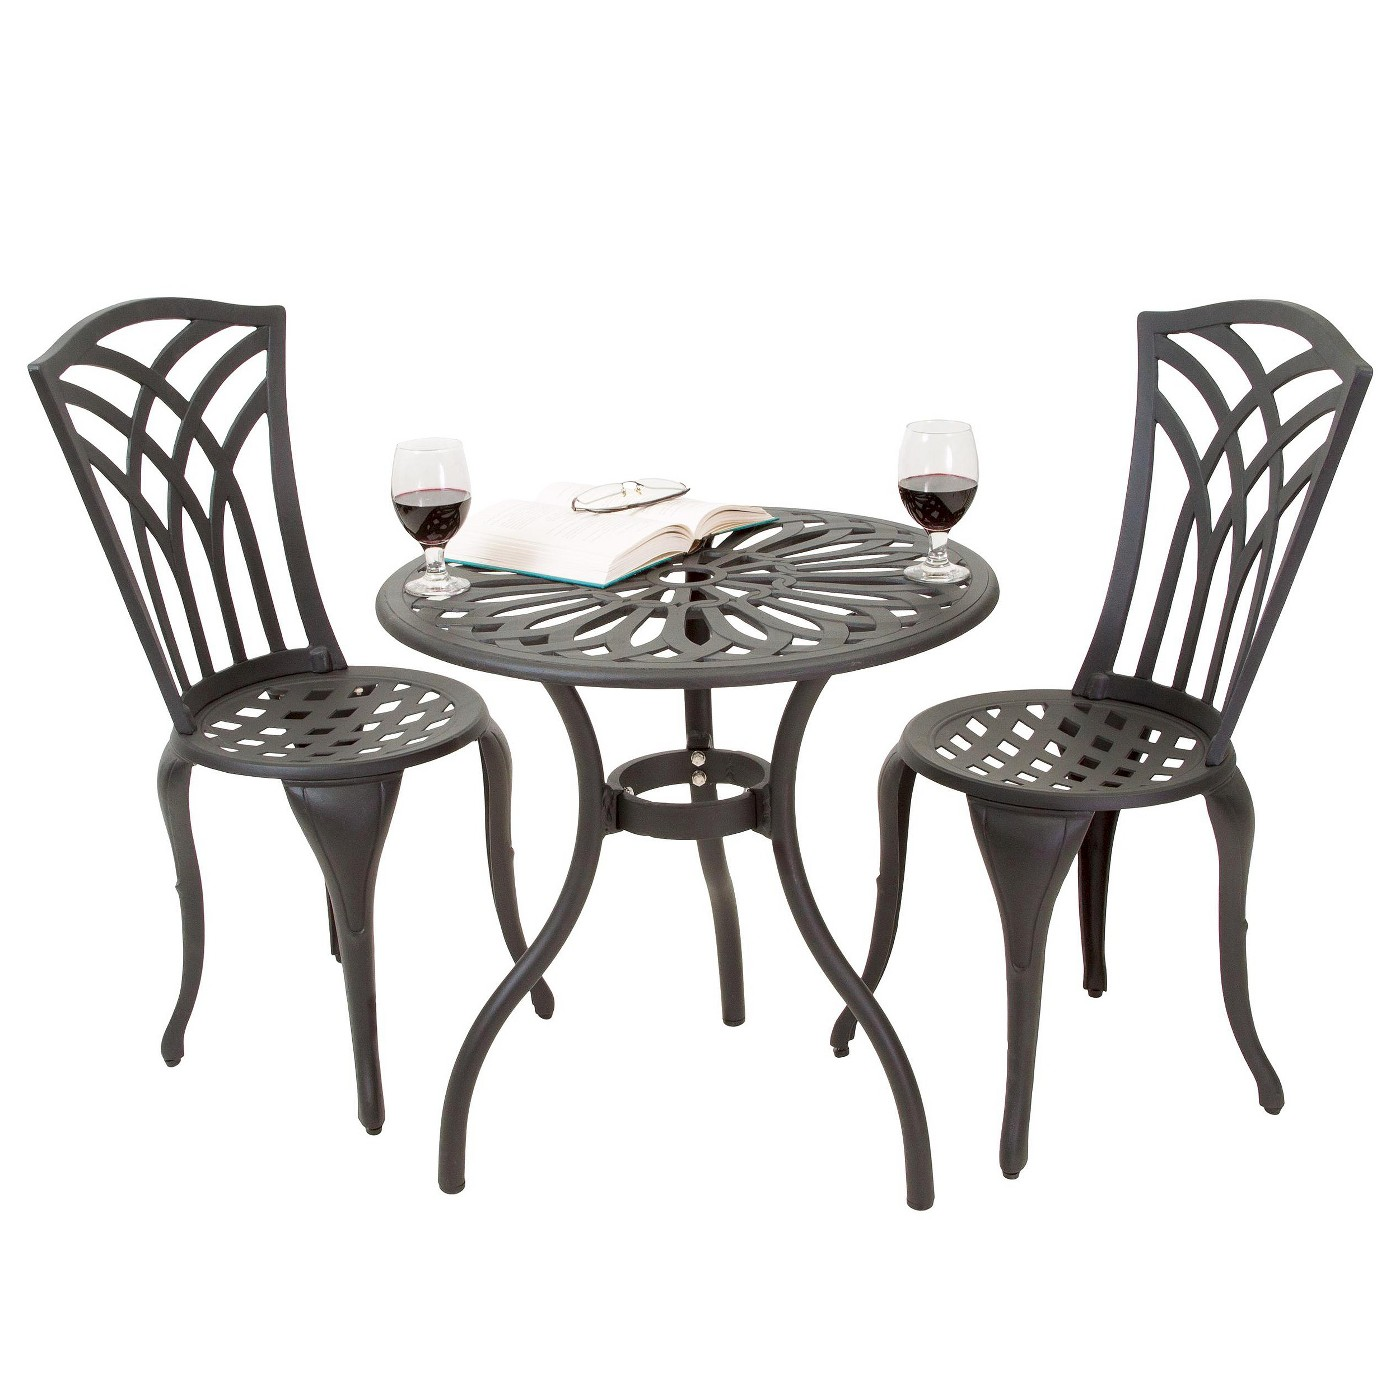 3-Pc Sanders Black Metal Frame Bistro Patio Dining Set